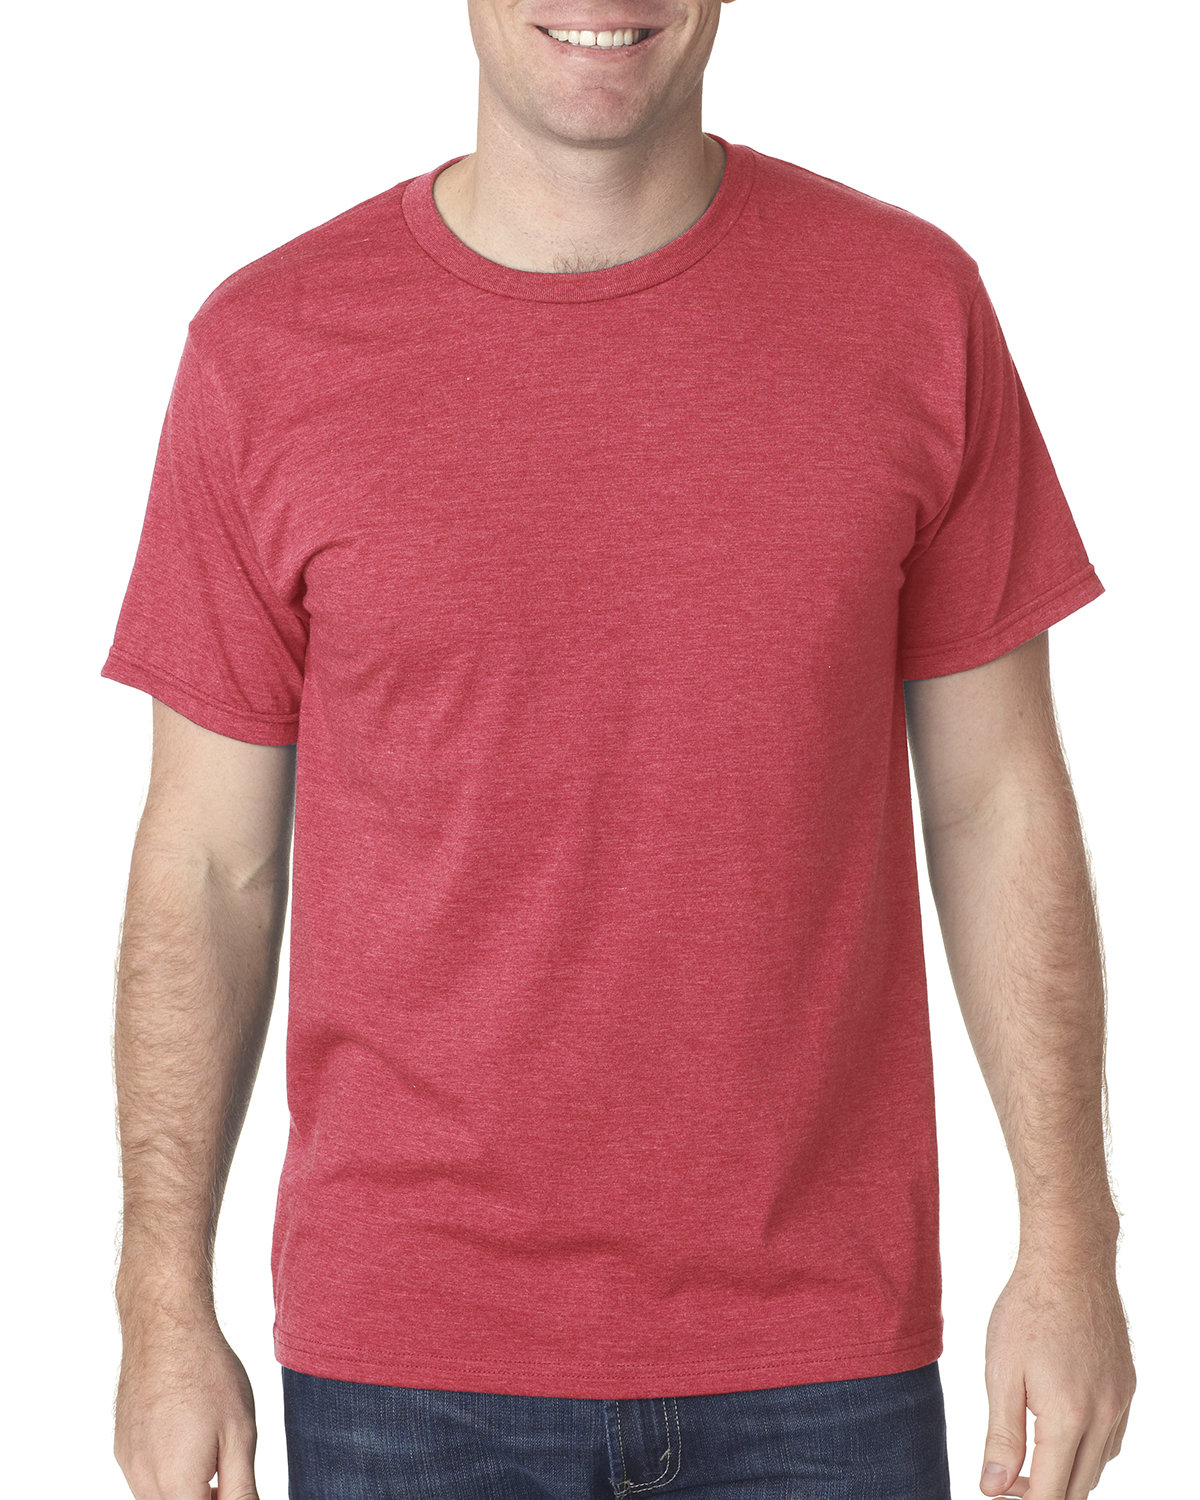 Bayside Adult Adult Heather Ring-Spun Jersey Tee HEATHER RED